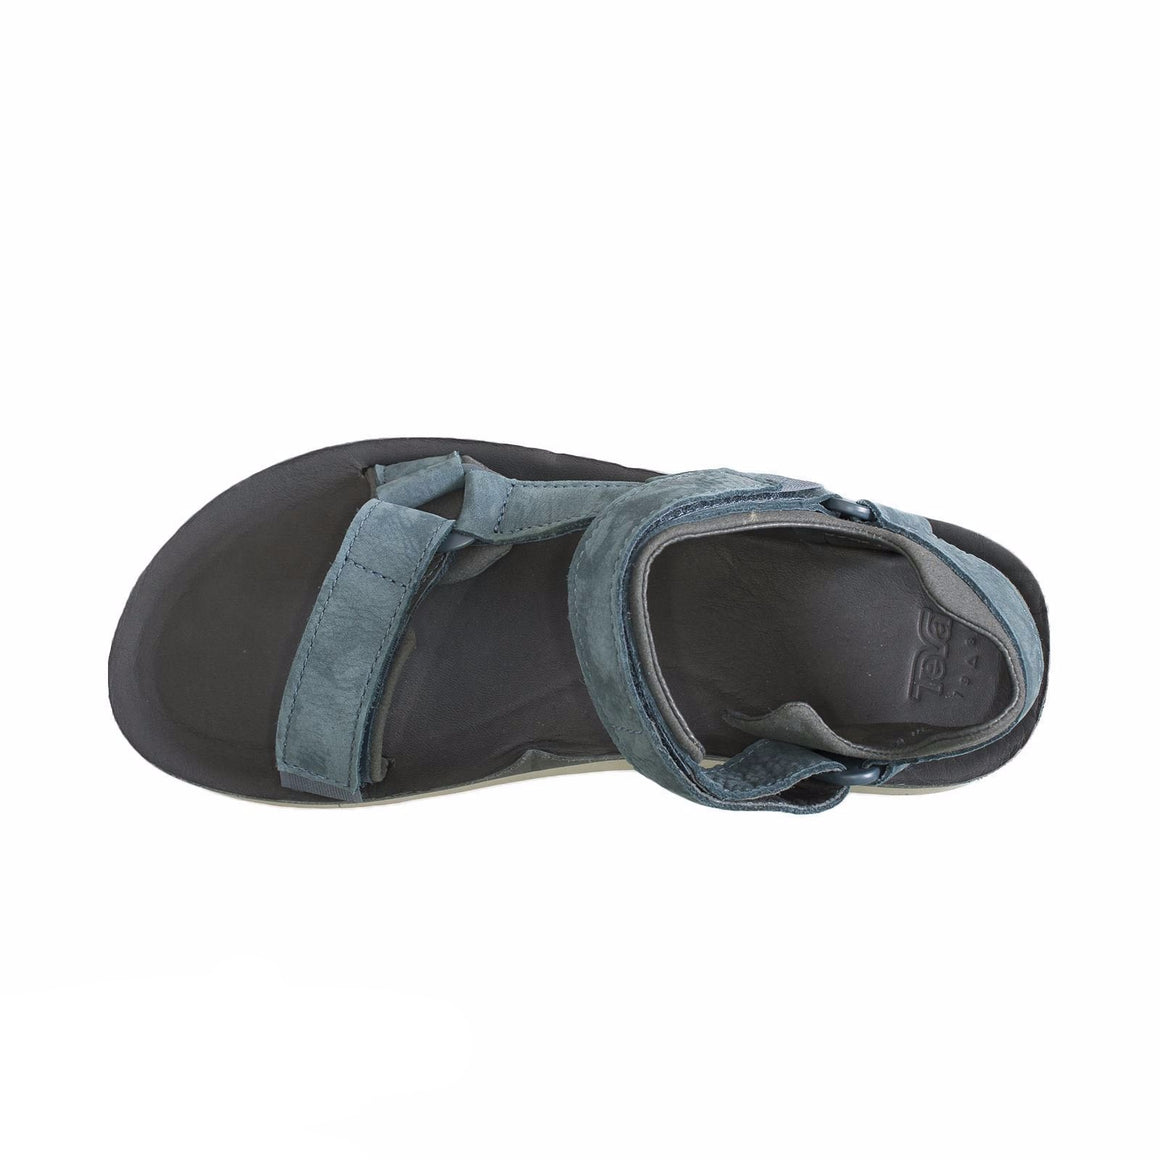 Teva Original Universal Premier Leather Indigo Sandals